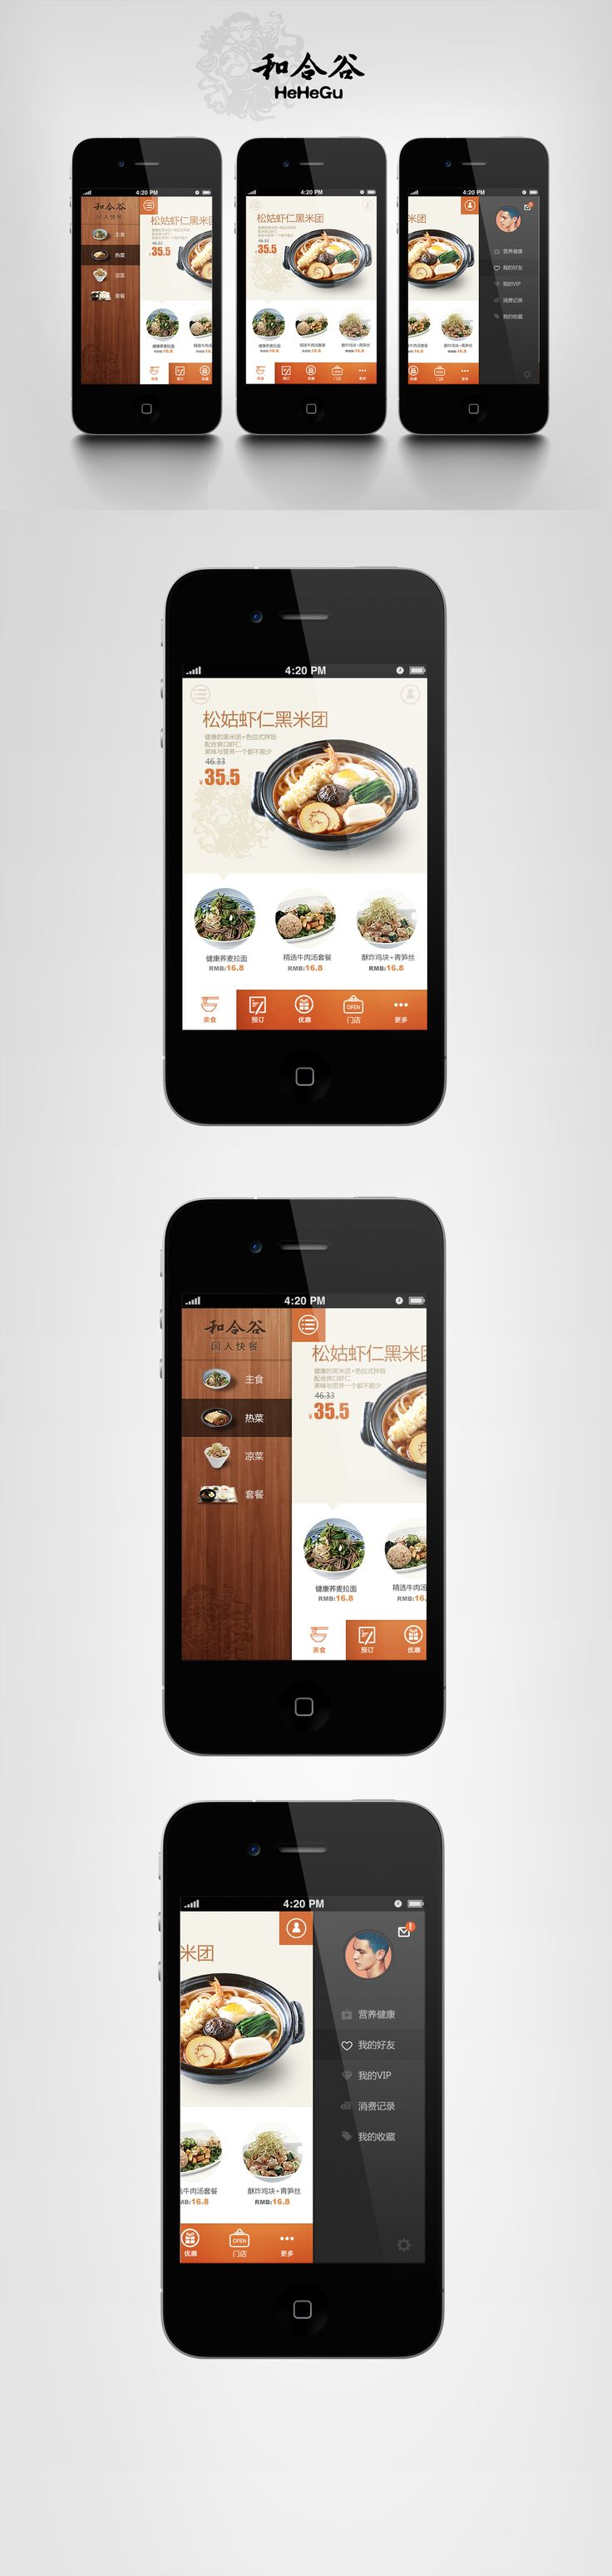 Menu's. #webdesign #design #designer #inspiration #user #interface #ui